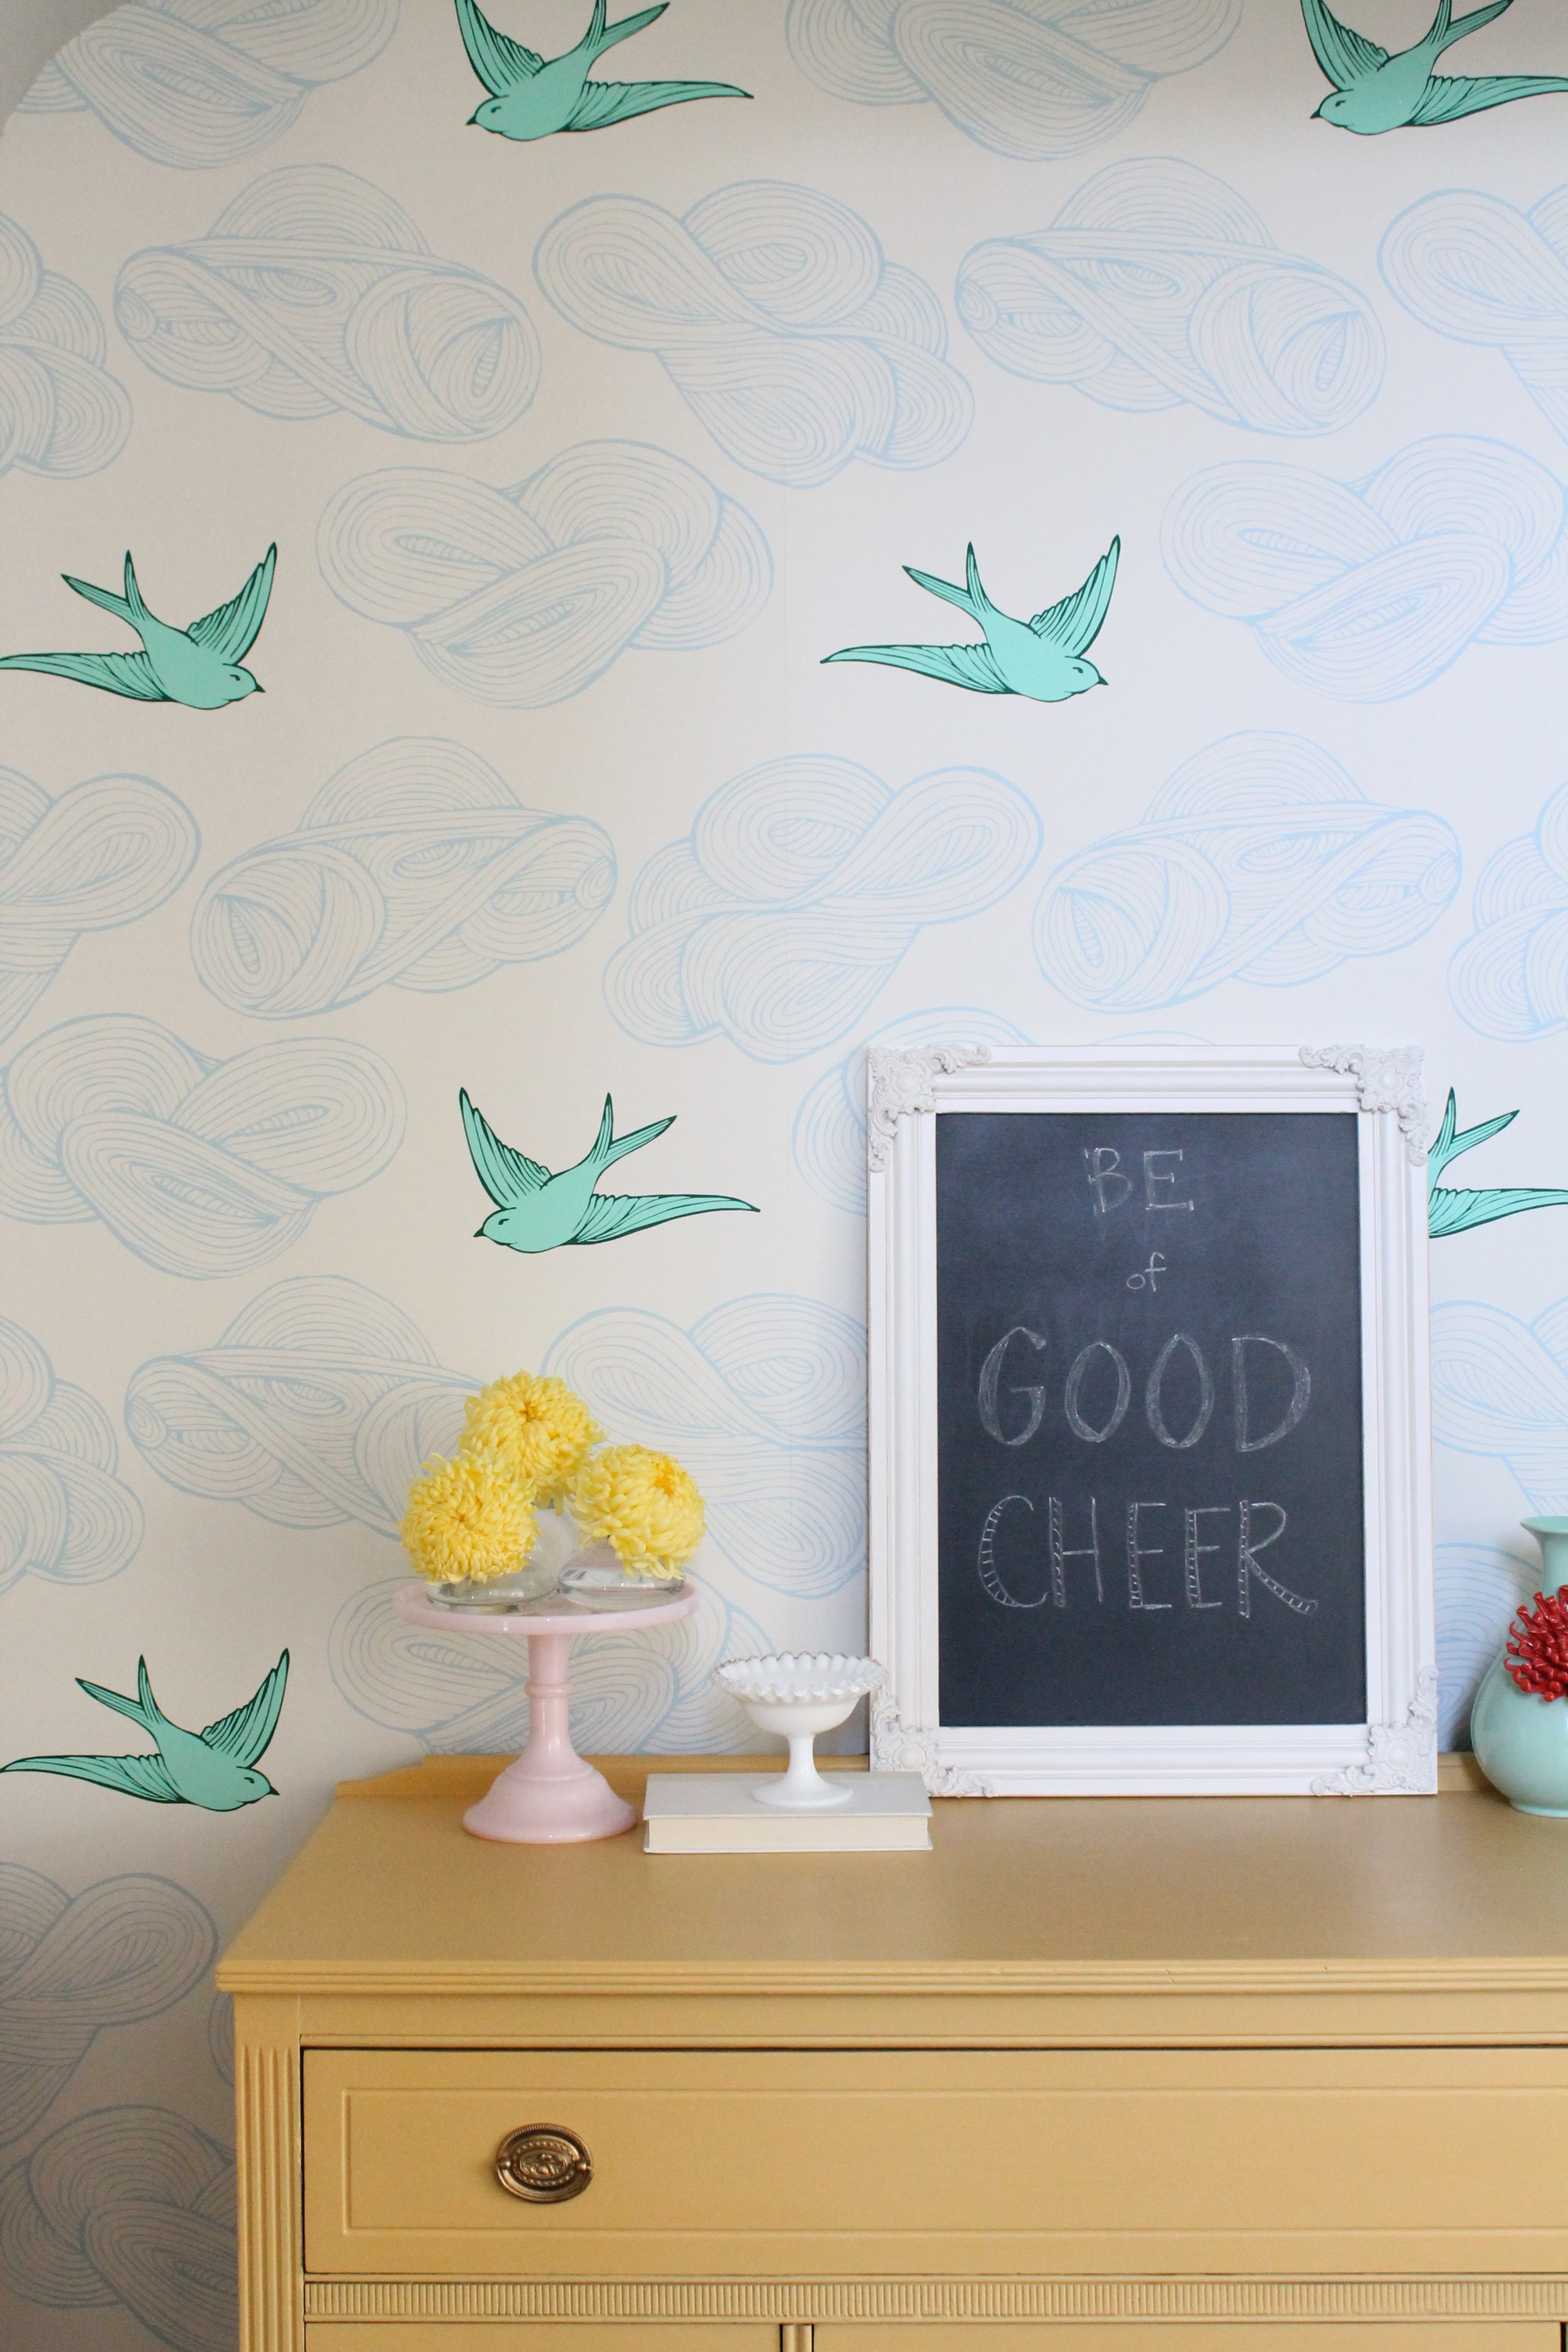 Hygge and West Wallpaper in this cheery little nook